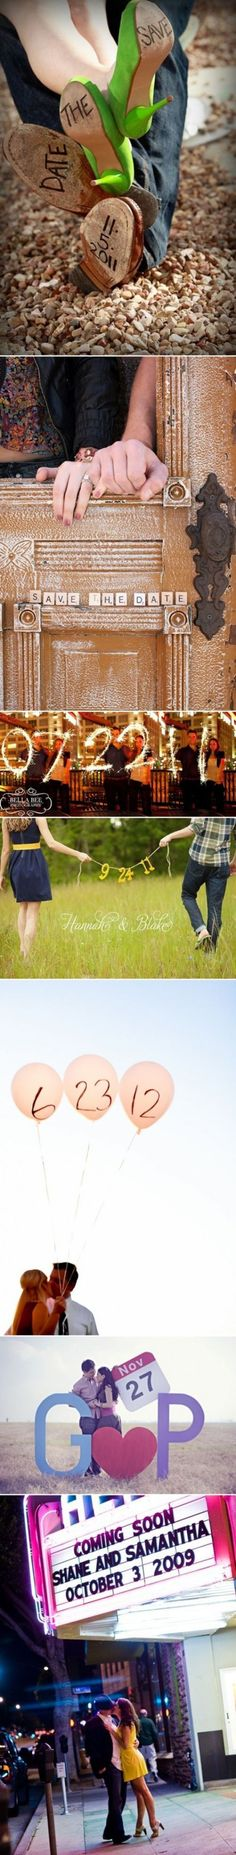 wedding ideas *Save the date idea*